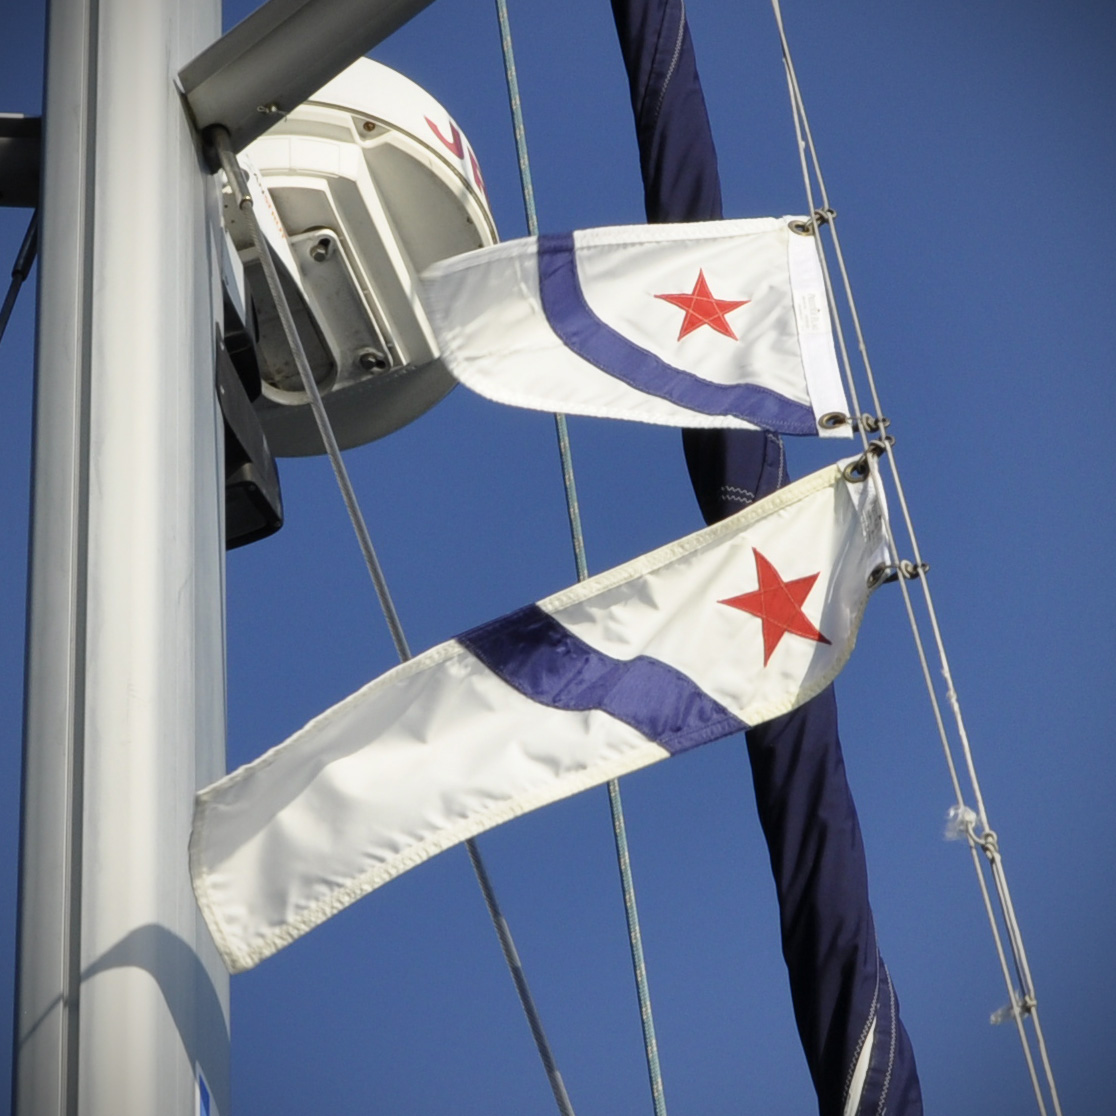 Catalina 42 MKII For Sale: Why we joined a yacht club - Seattle